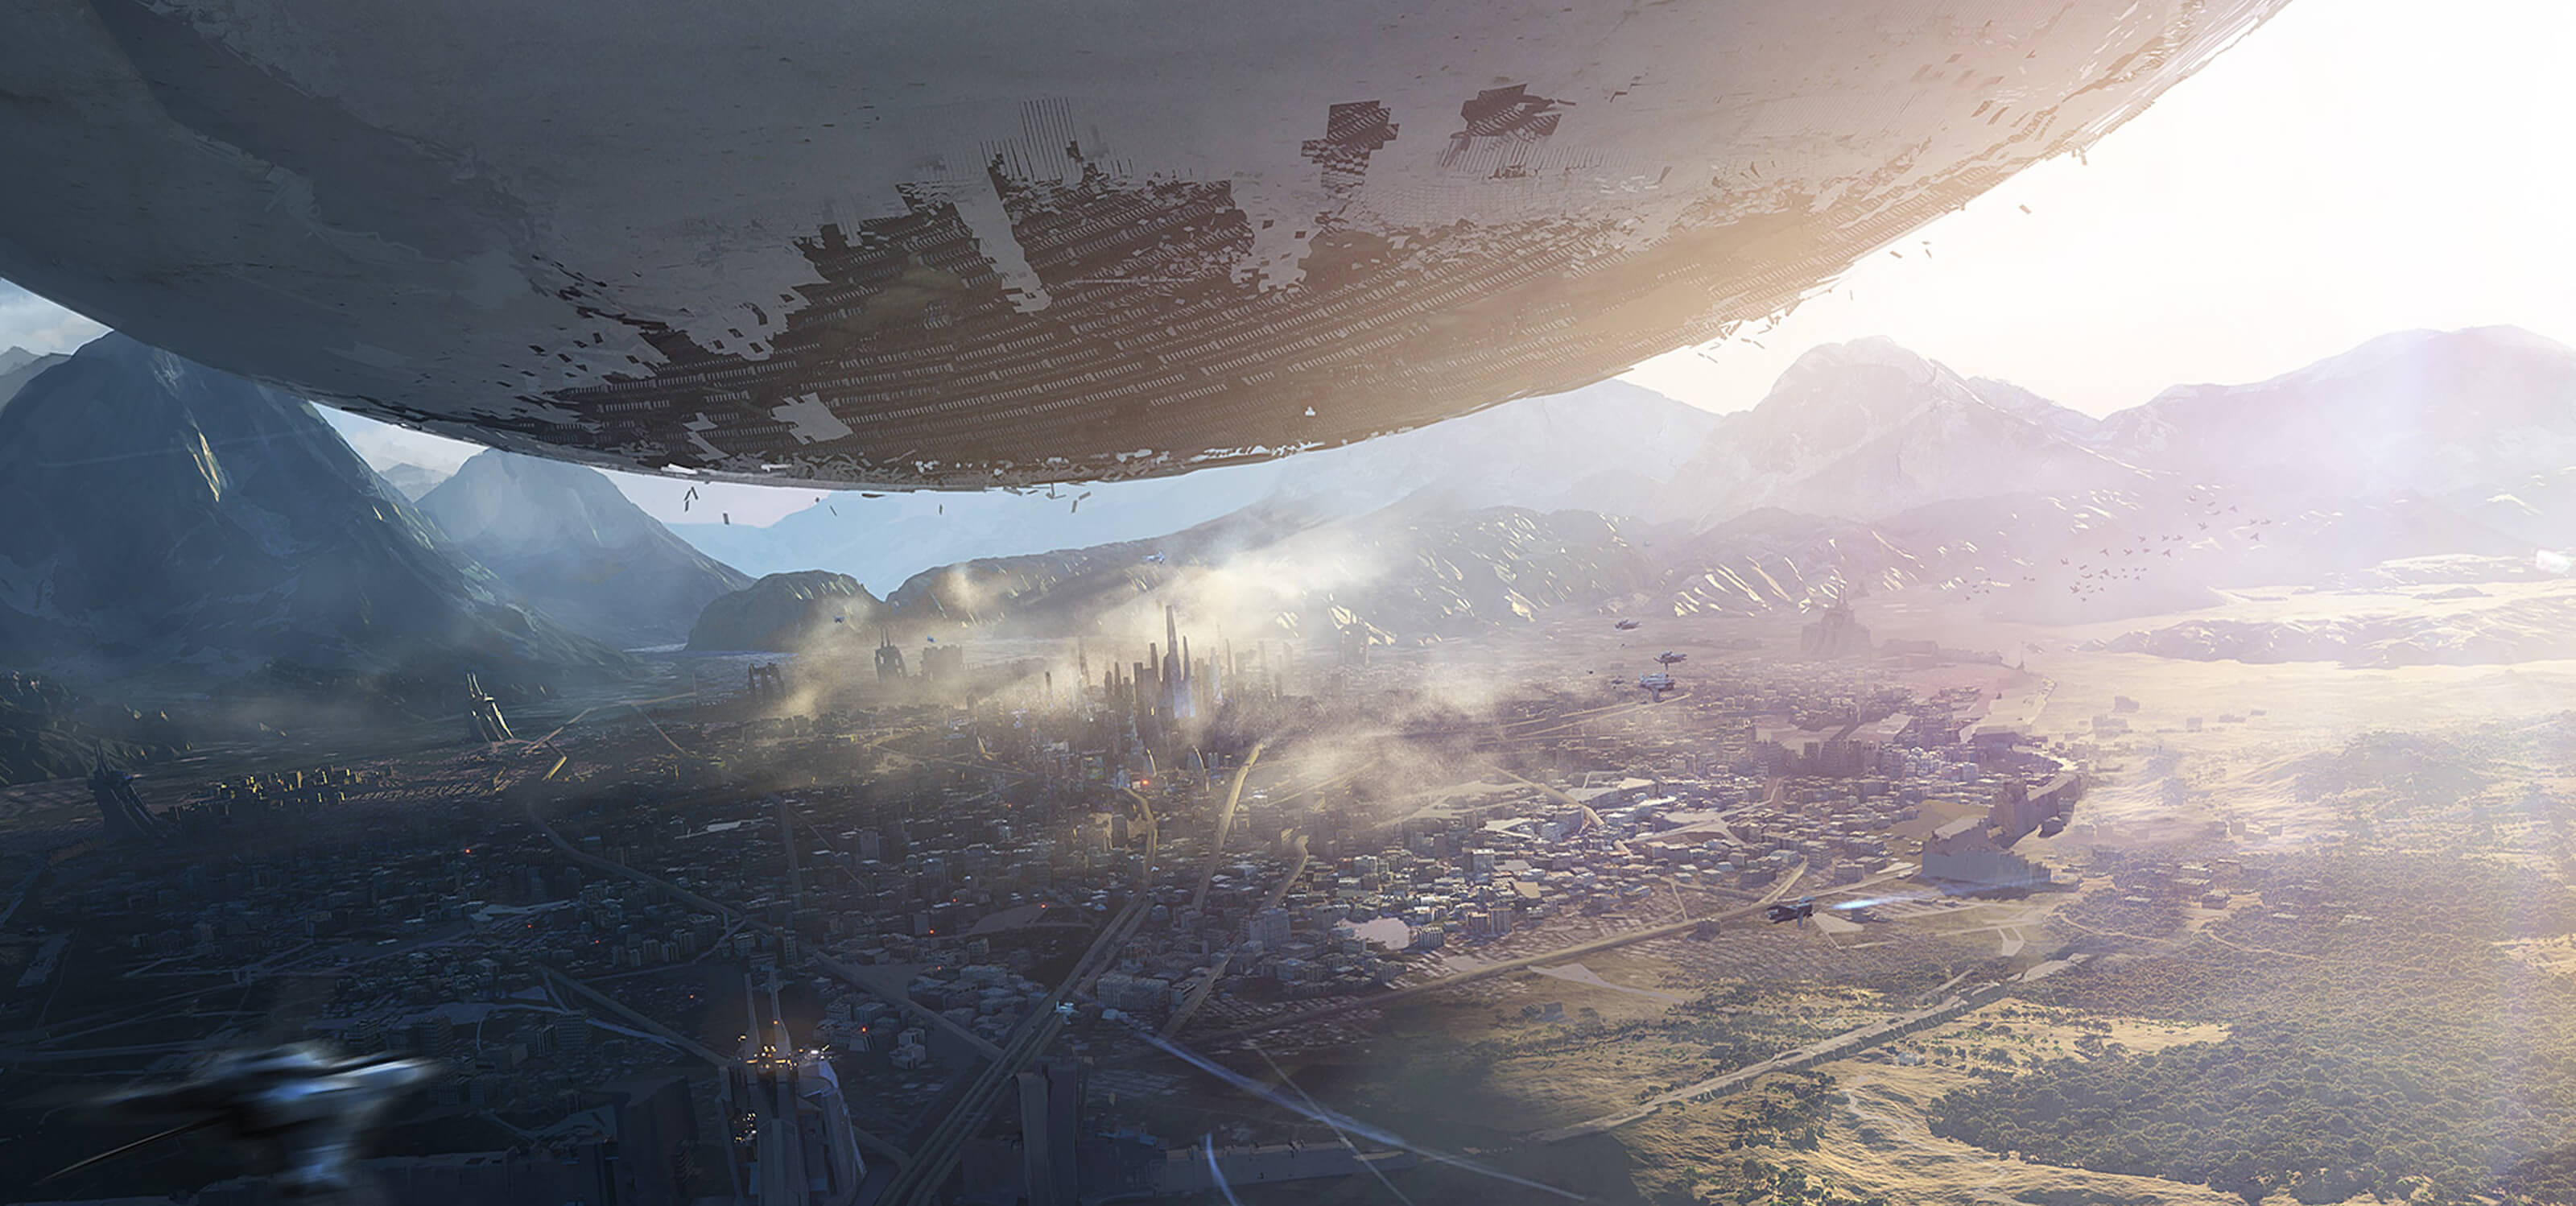 Screenshot from Destiny of an alien spaceship, called the Traveler, hovering over the last city